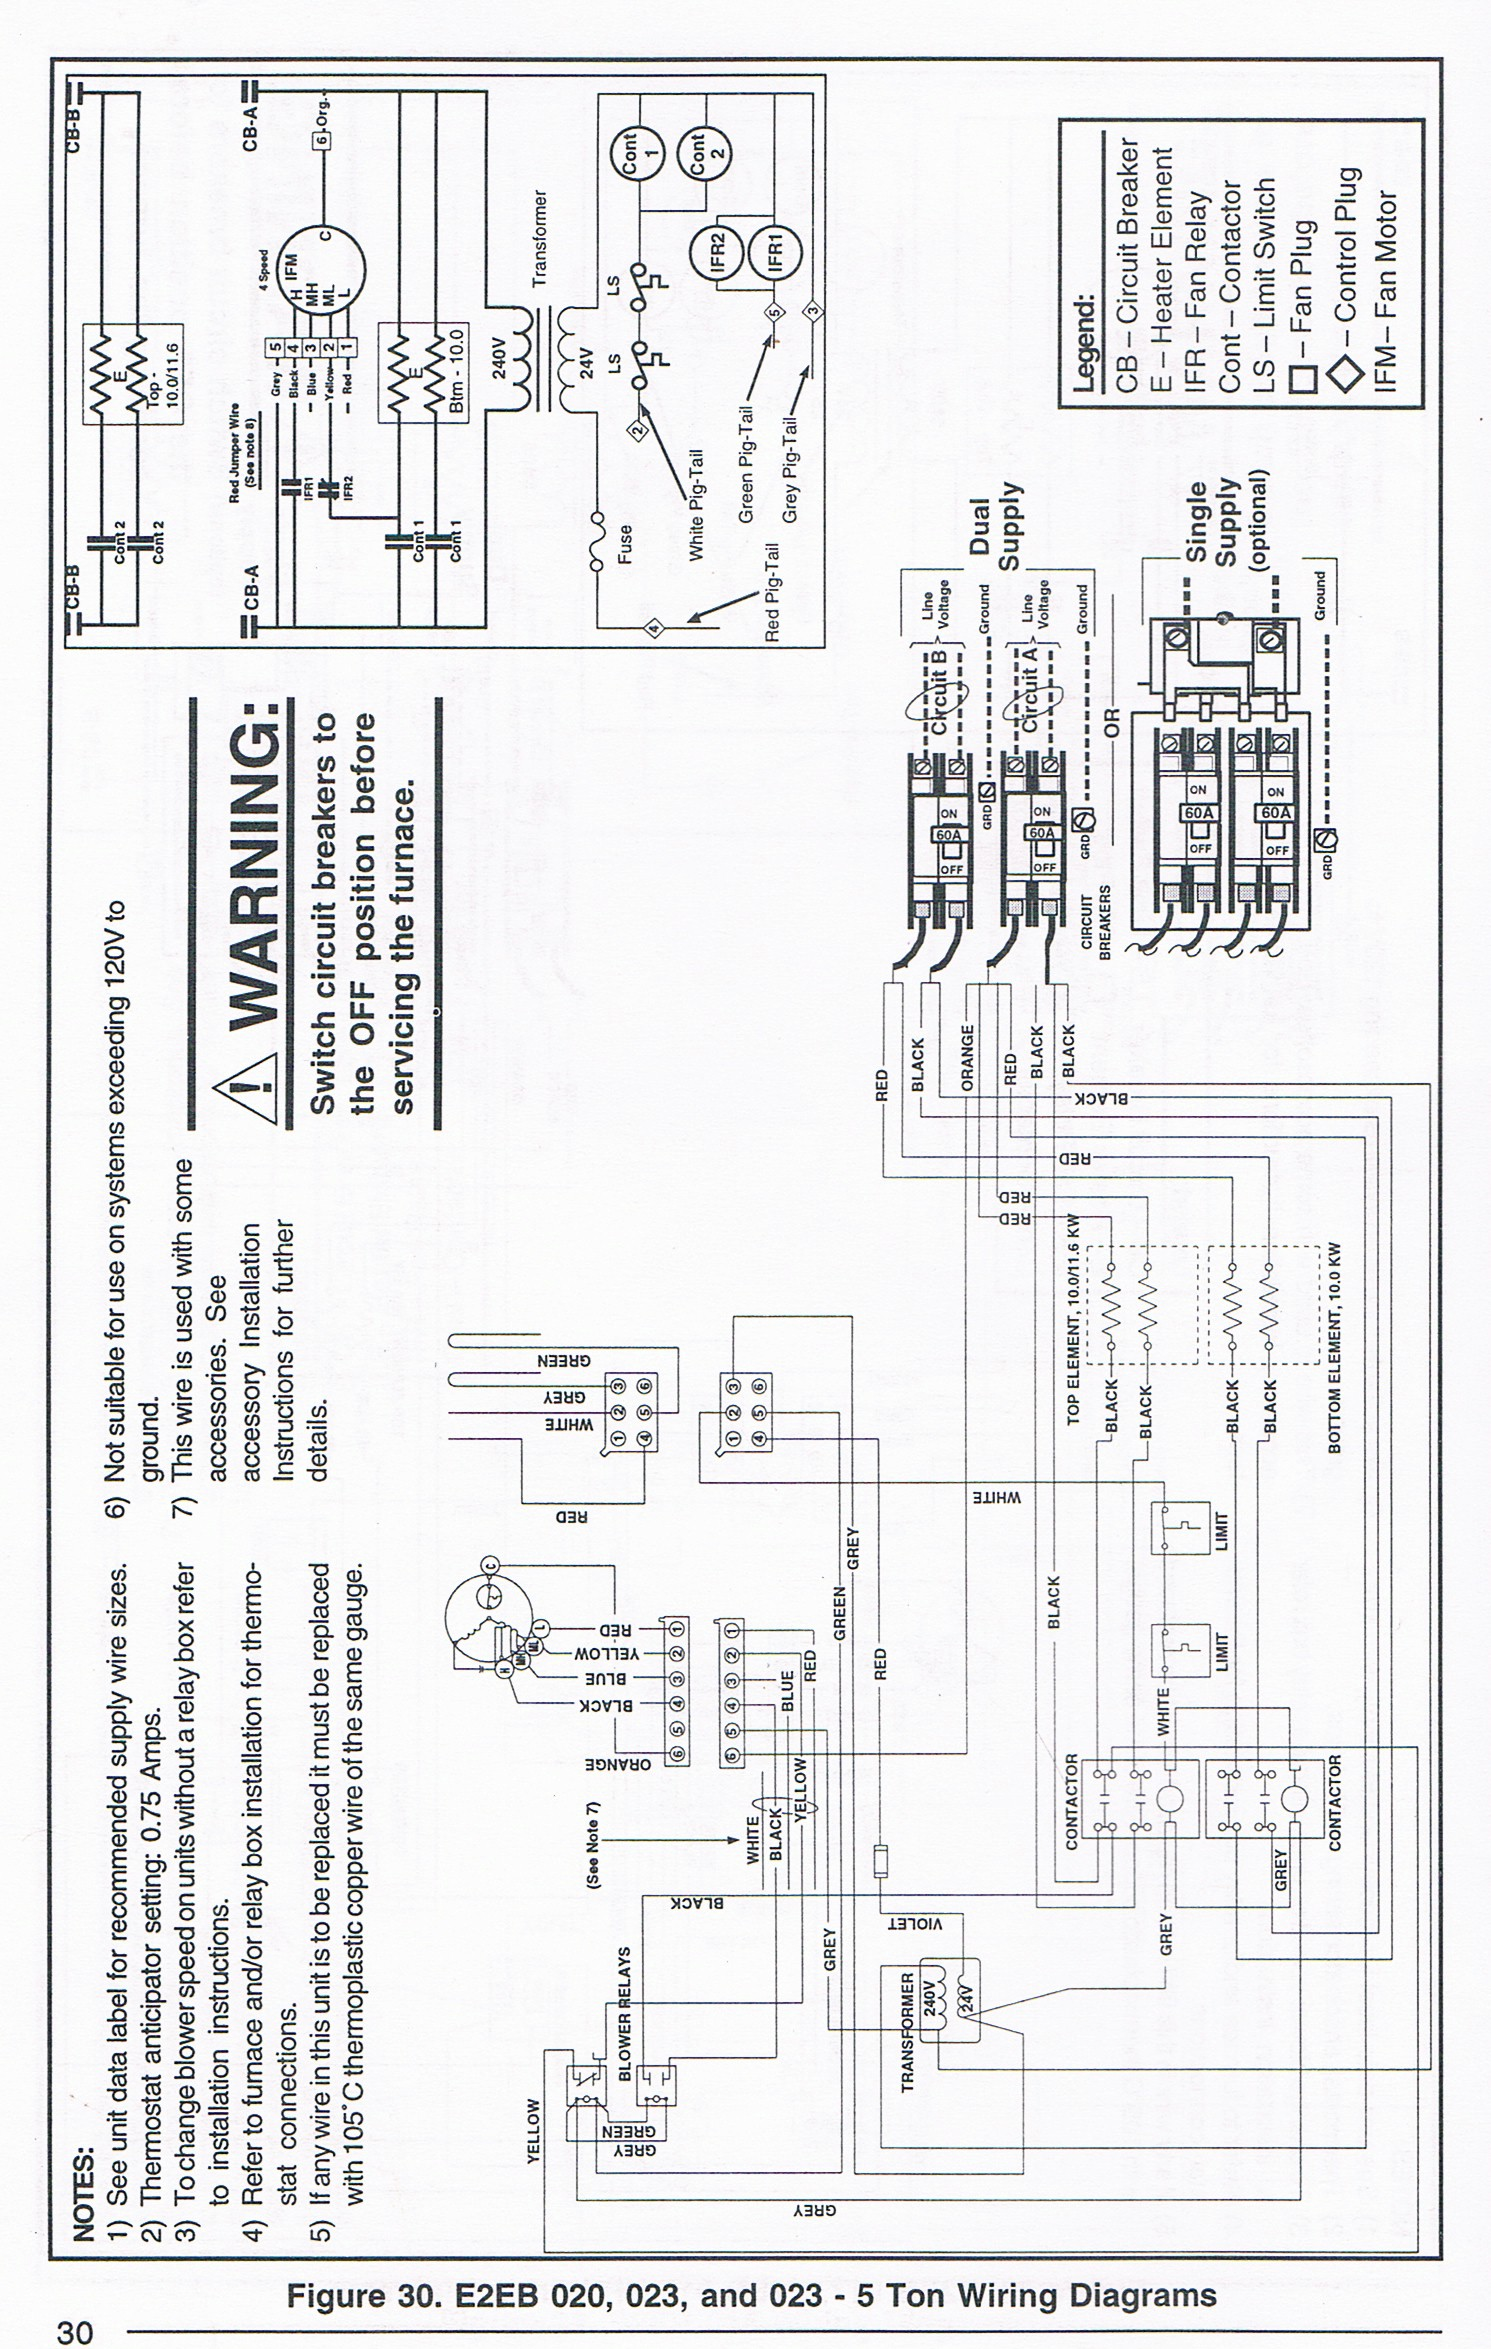 hight resolution of wiring diagram for nordyne electric furnace wiring diagram page wiring diagram for furnace moreover intertherm electric furnace wiring